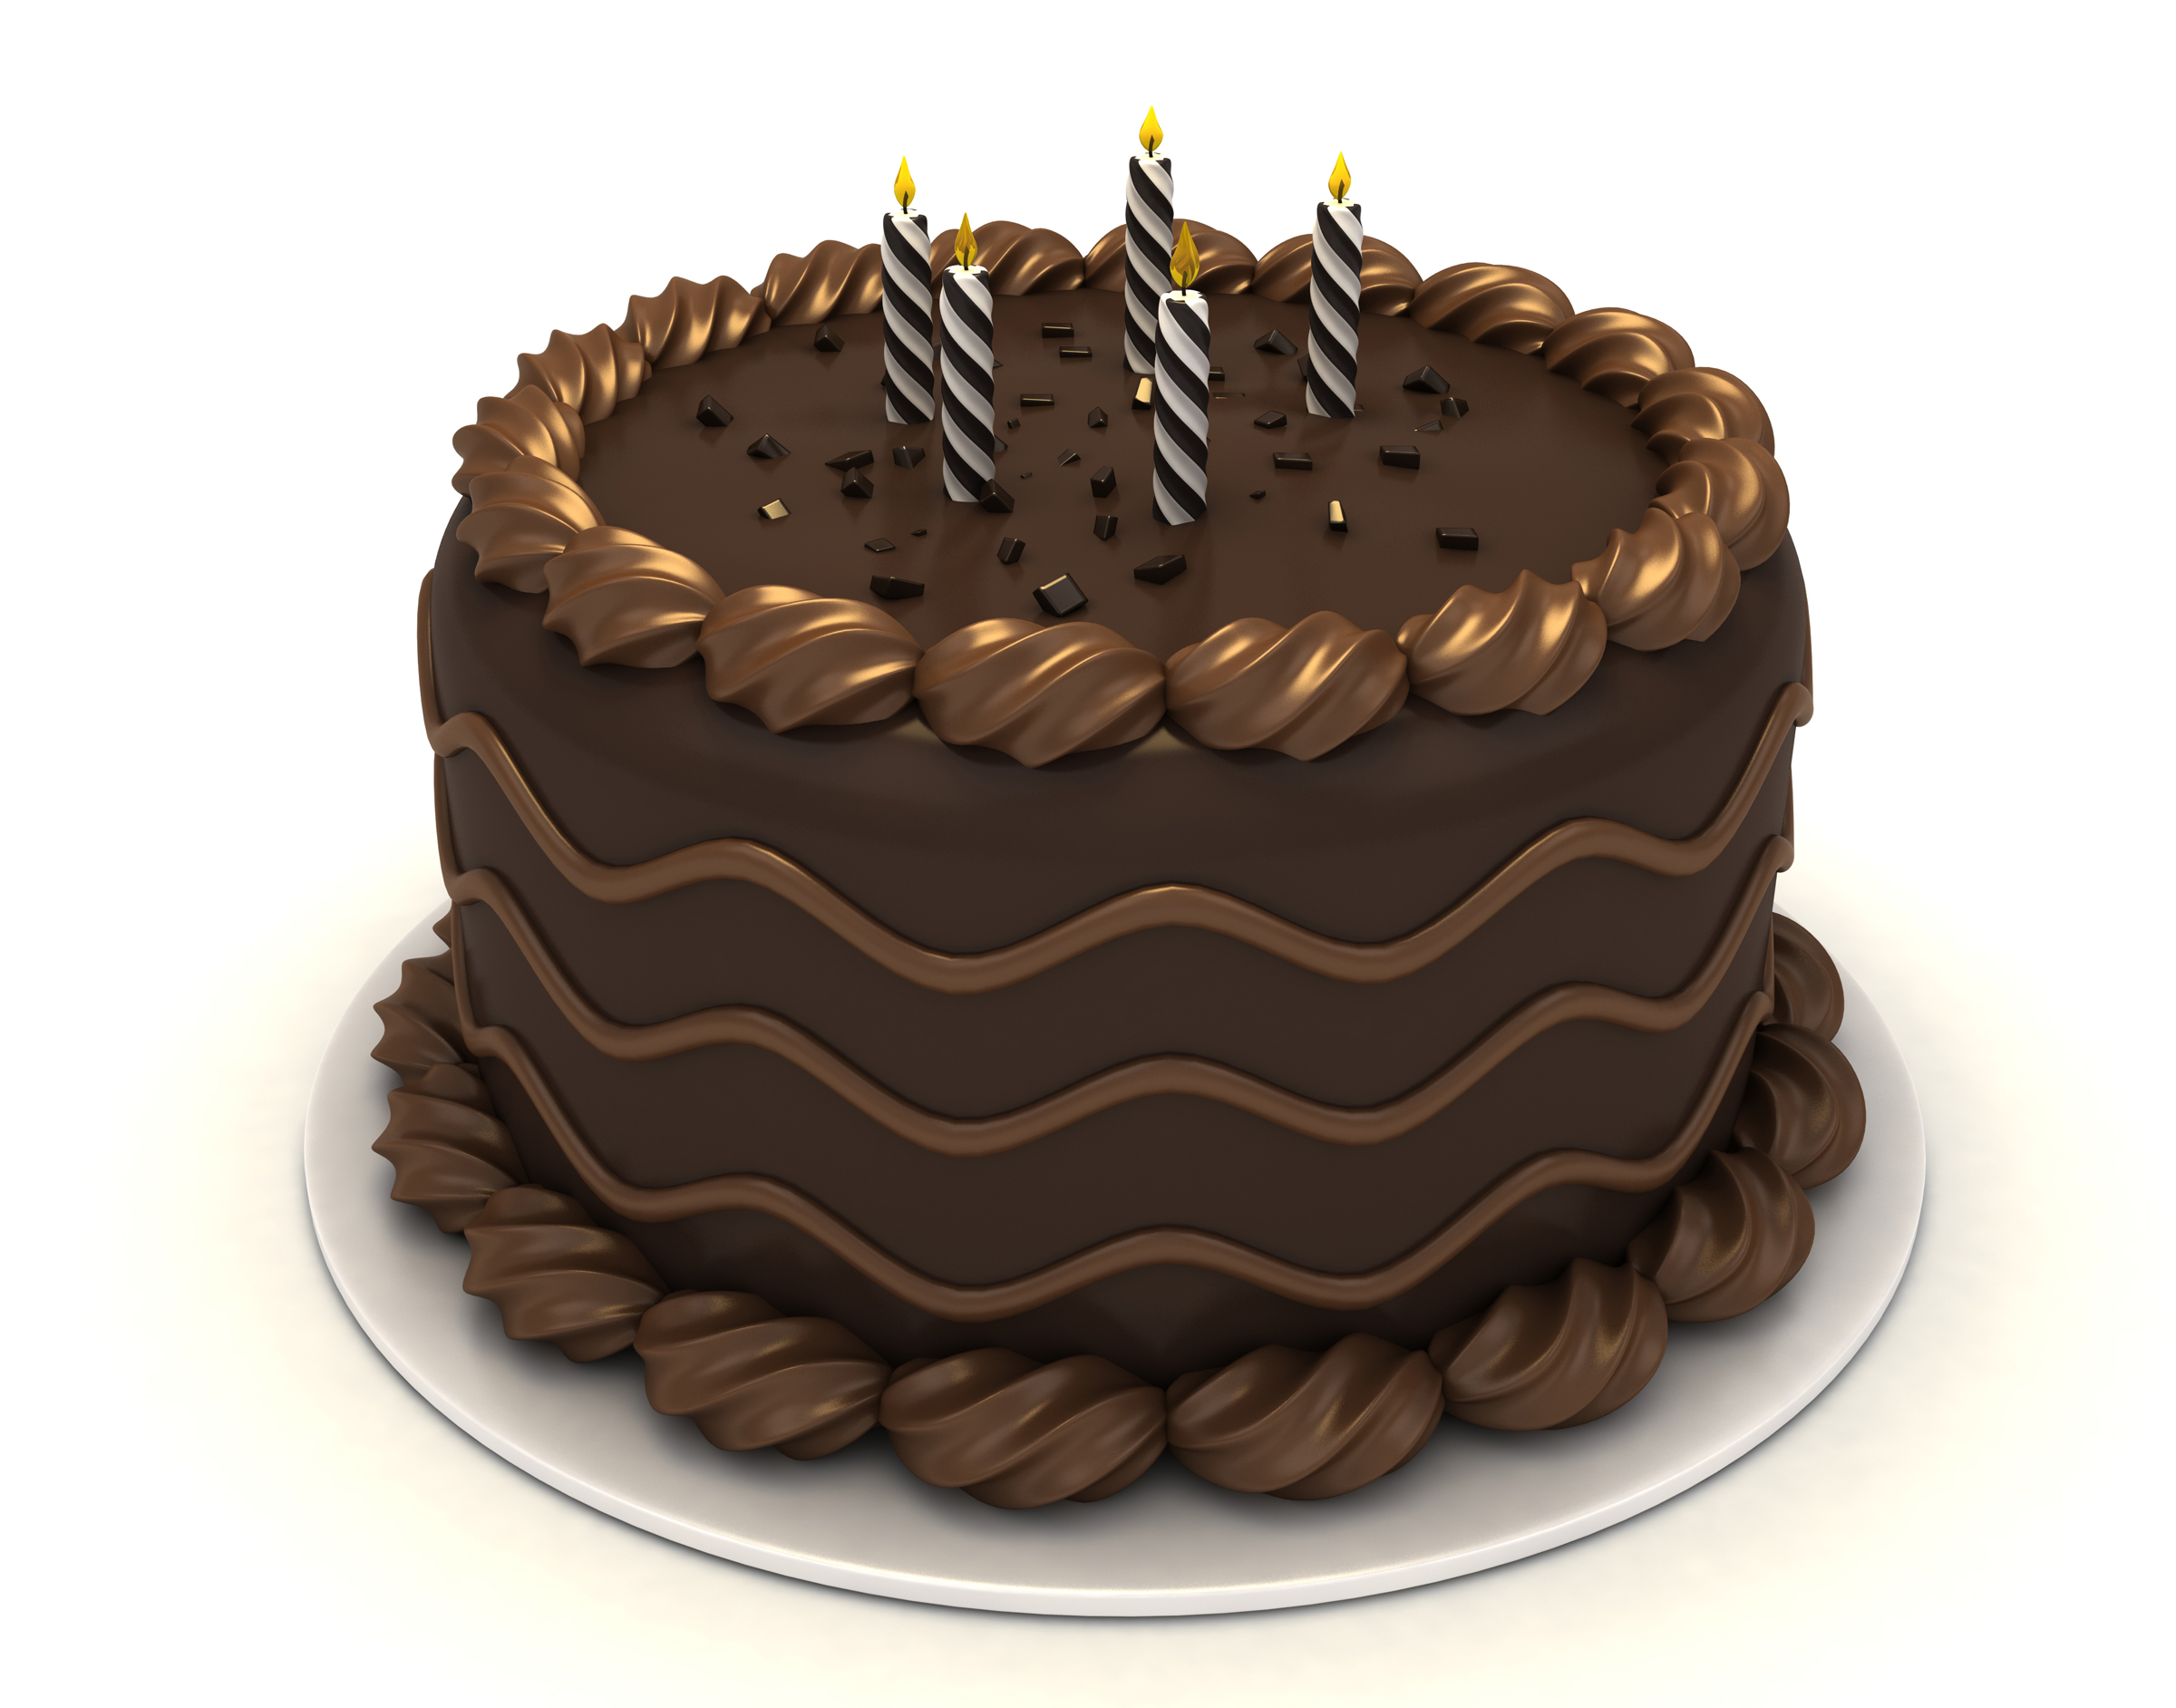 Chocolate birthday cake clipart image royalty free download Chocolate Cake Clipart & Chocolate Cake Clip Art Images ... image royalty free download